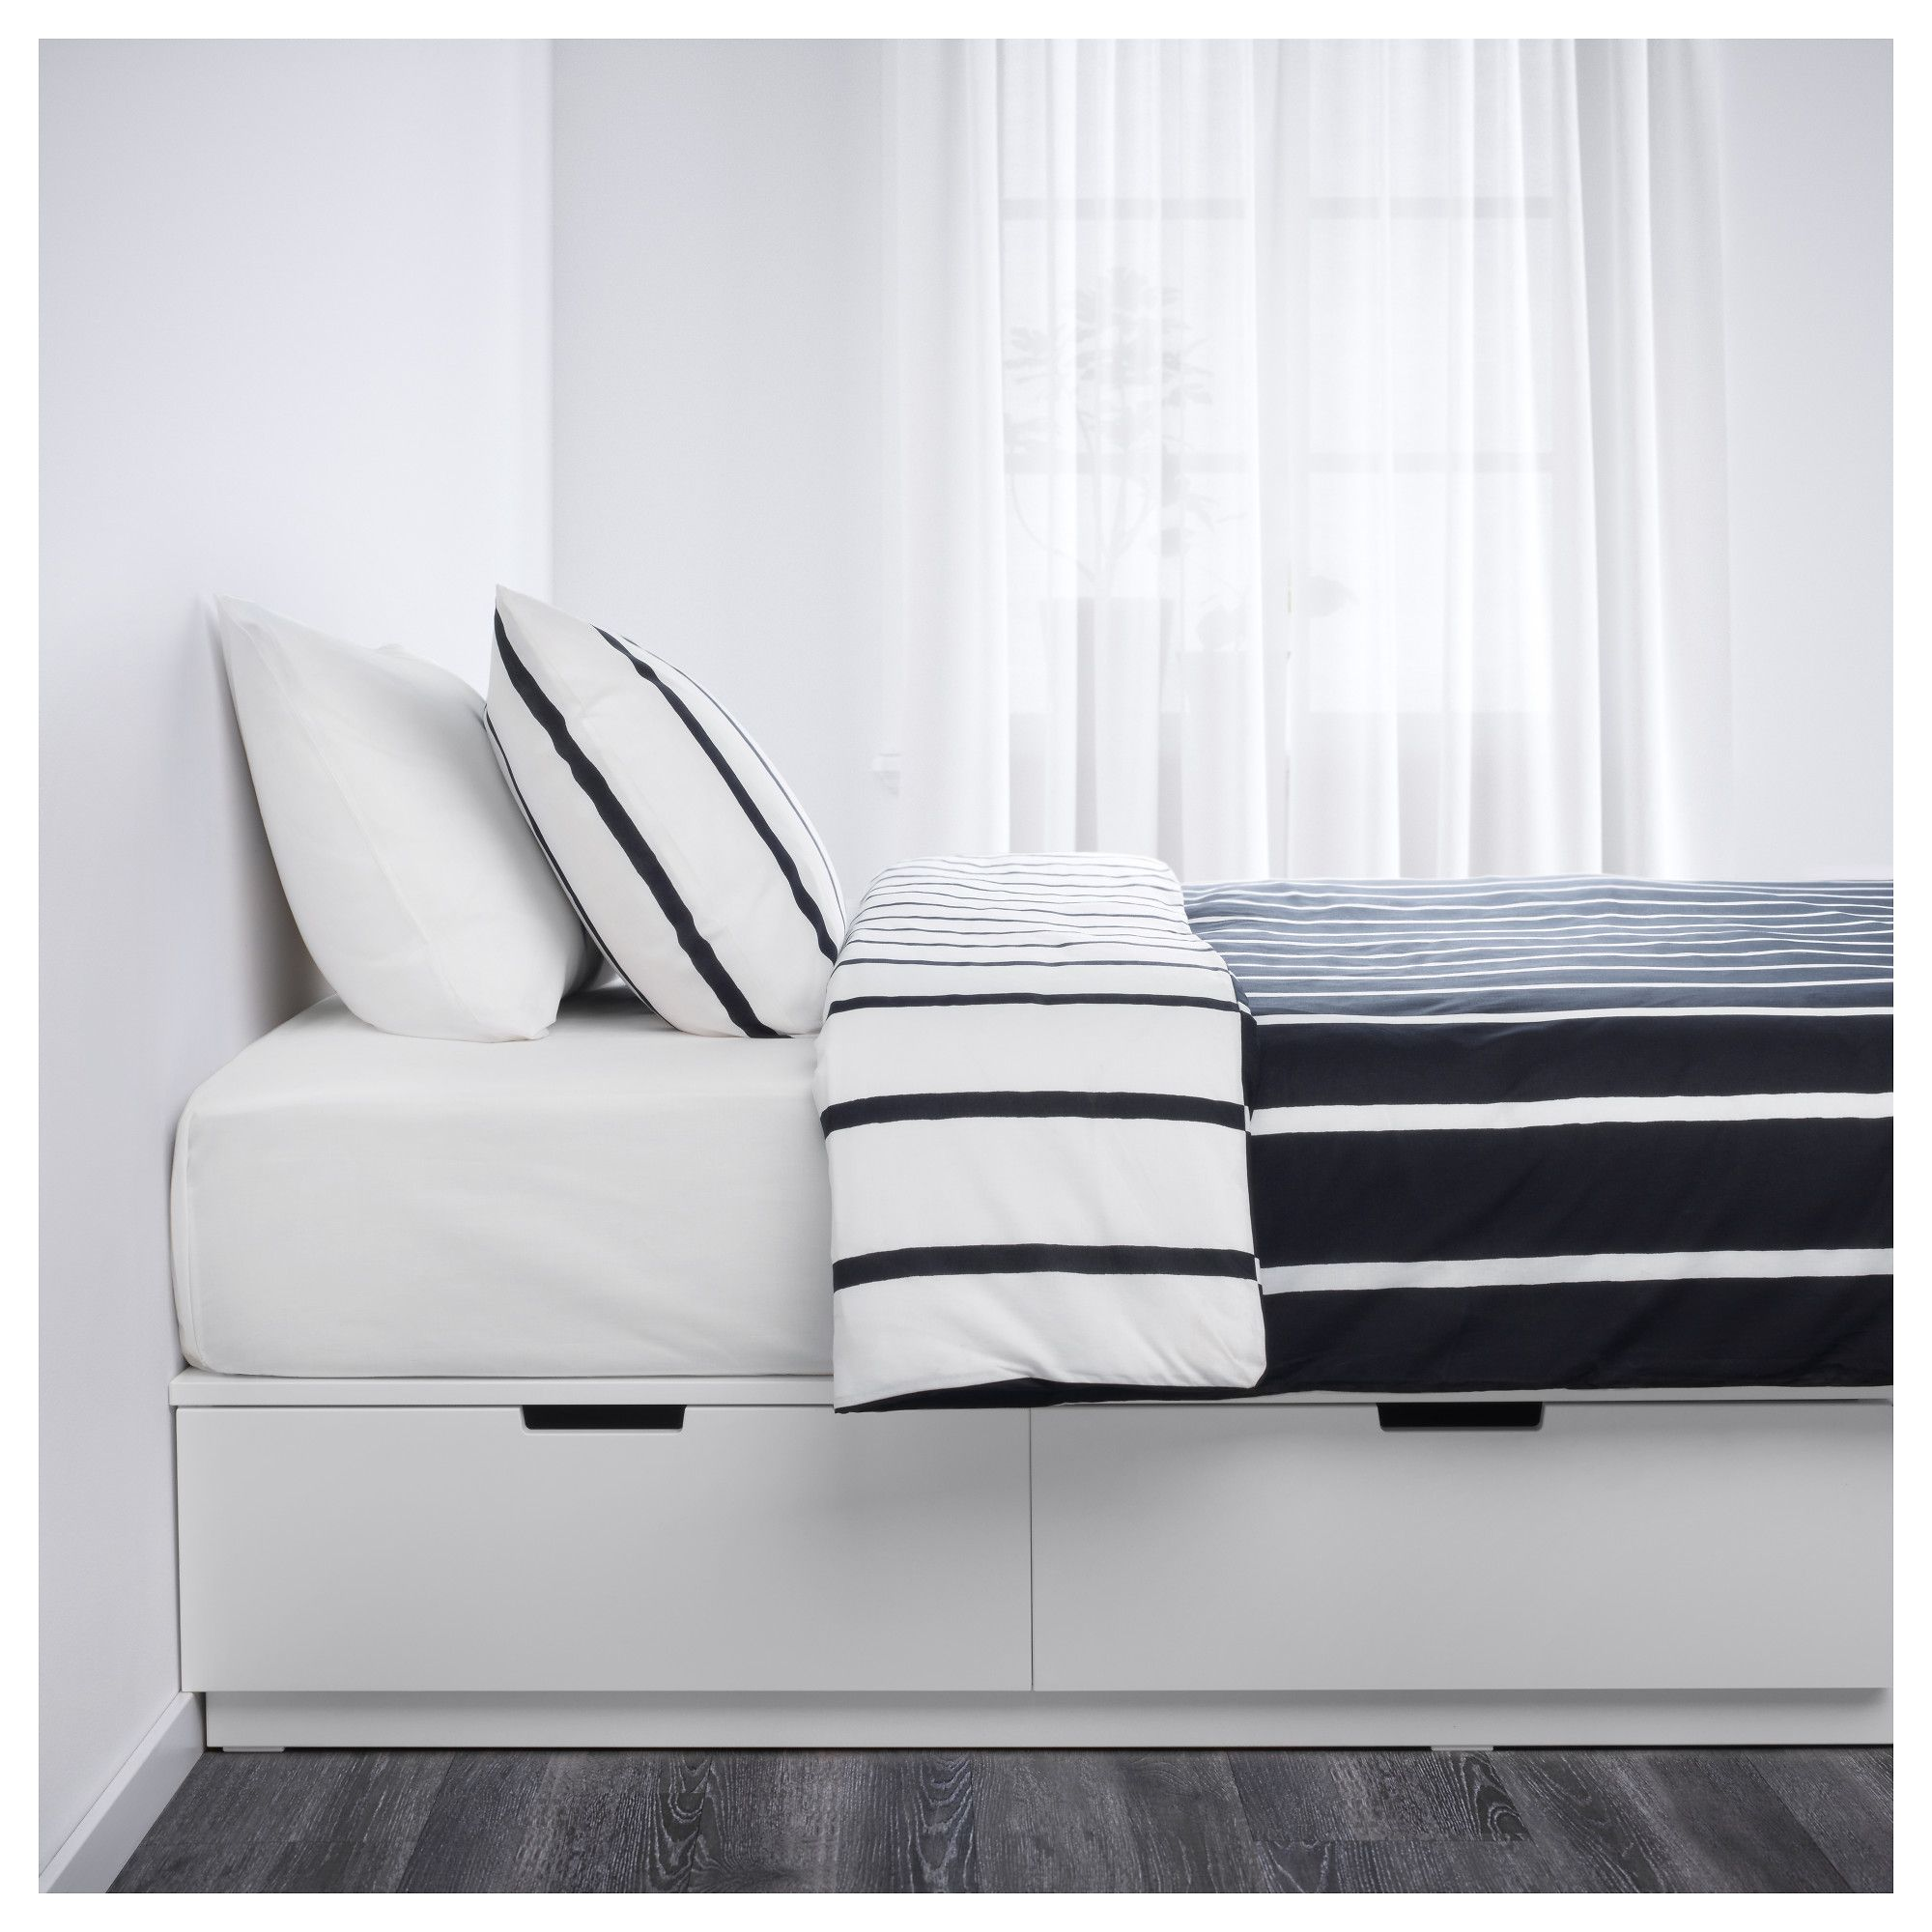 Nordli Bed Frame With Storage White 140x200 Cm Ikea Bed Frame With Storage Ikea Bed Bed Frame With Drawers